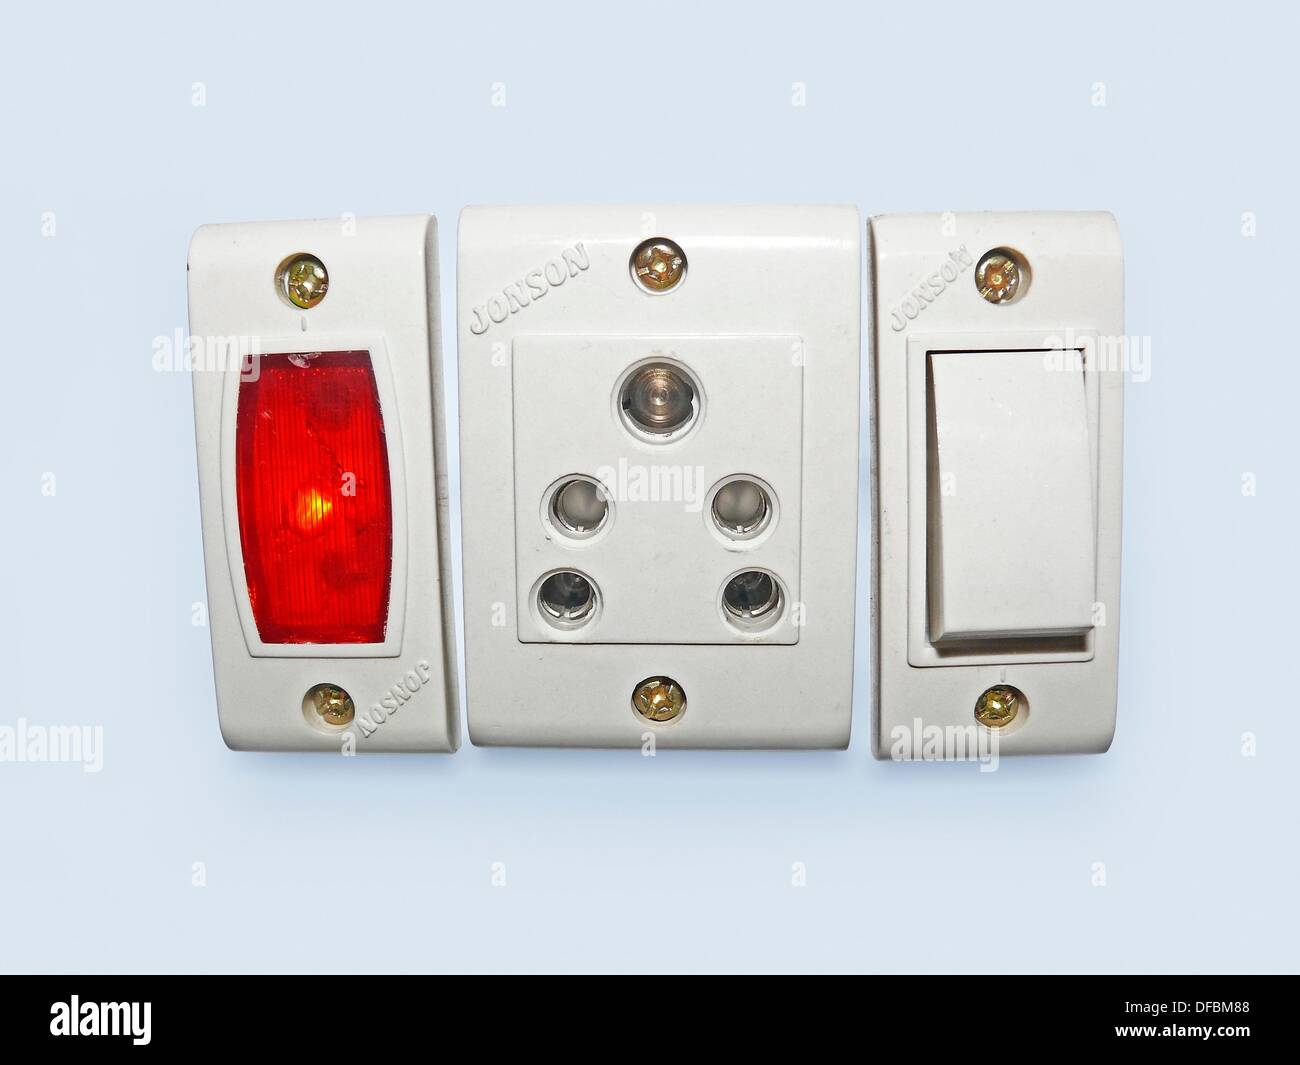 Switch Off Plug Stockfotos & Switch Off Plug Bilder - Alamy